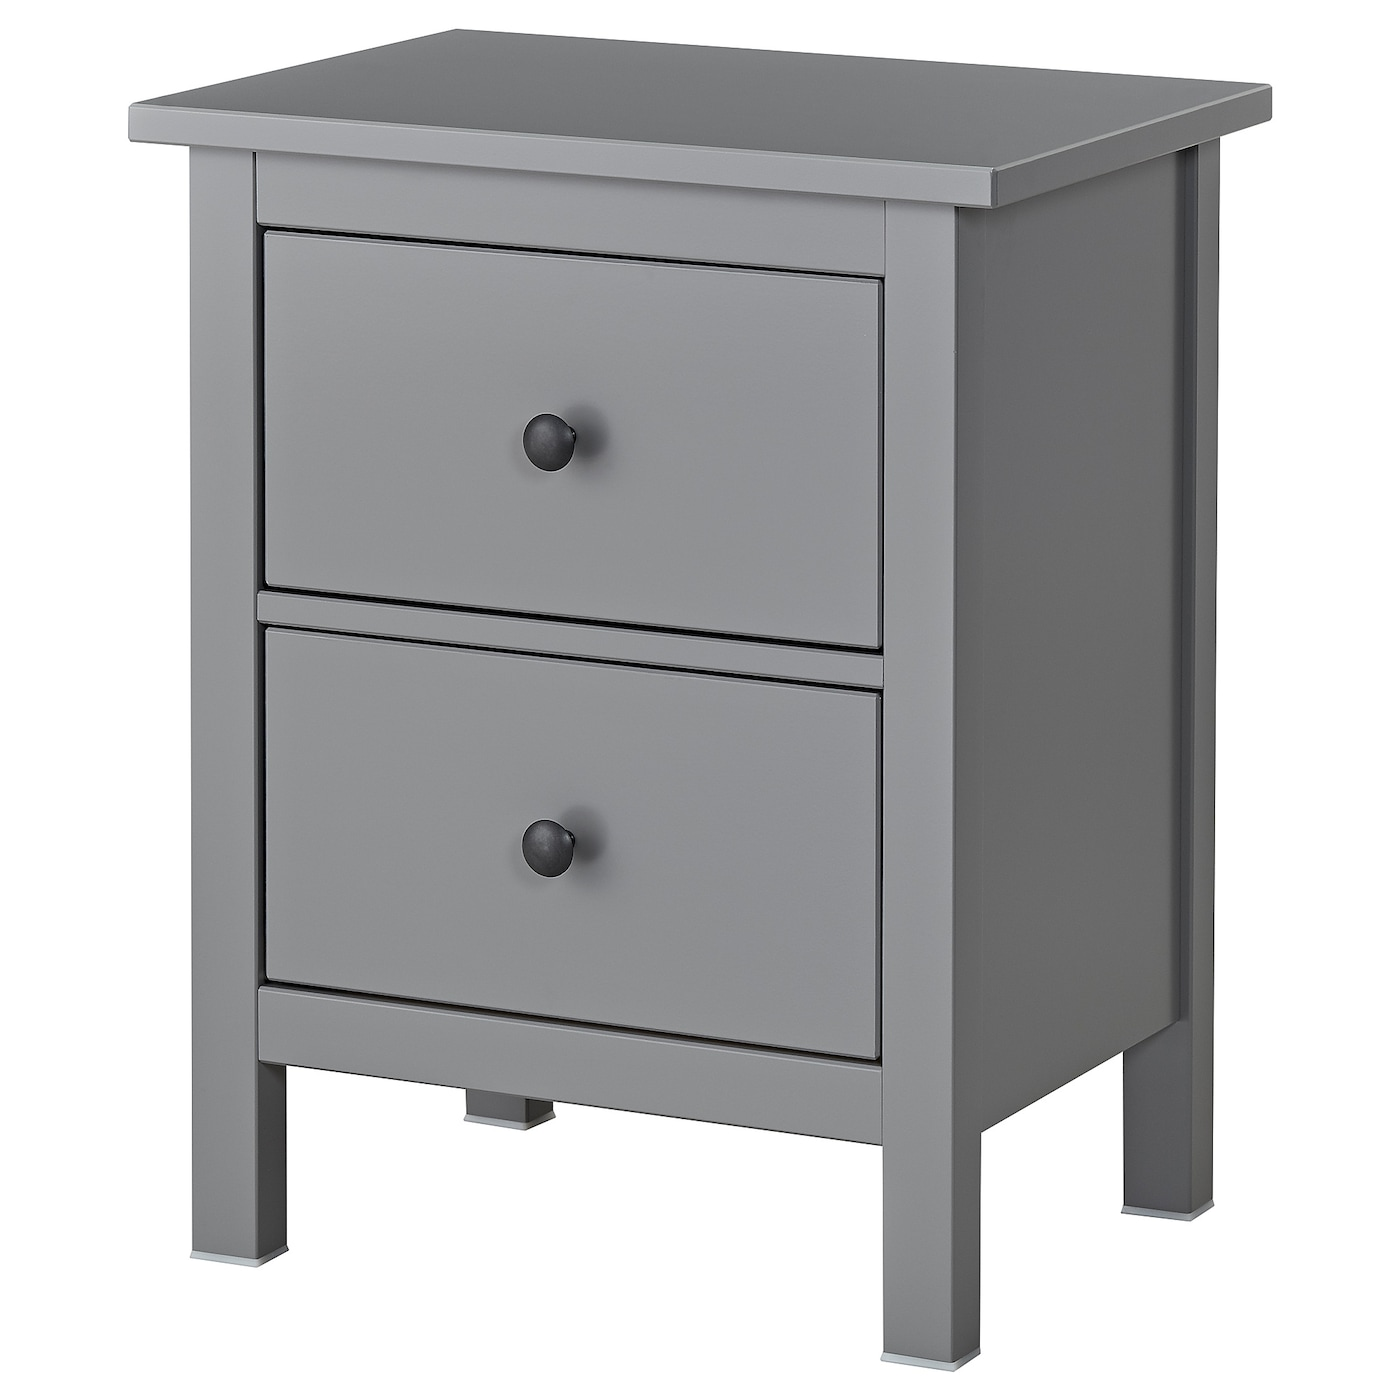 IKEA HEMNES chest of 2 drawers Made of solid wood, which is a hardwearing and warm natural material.